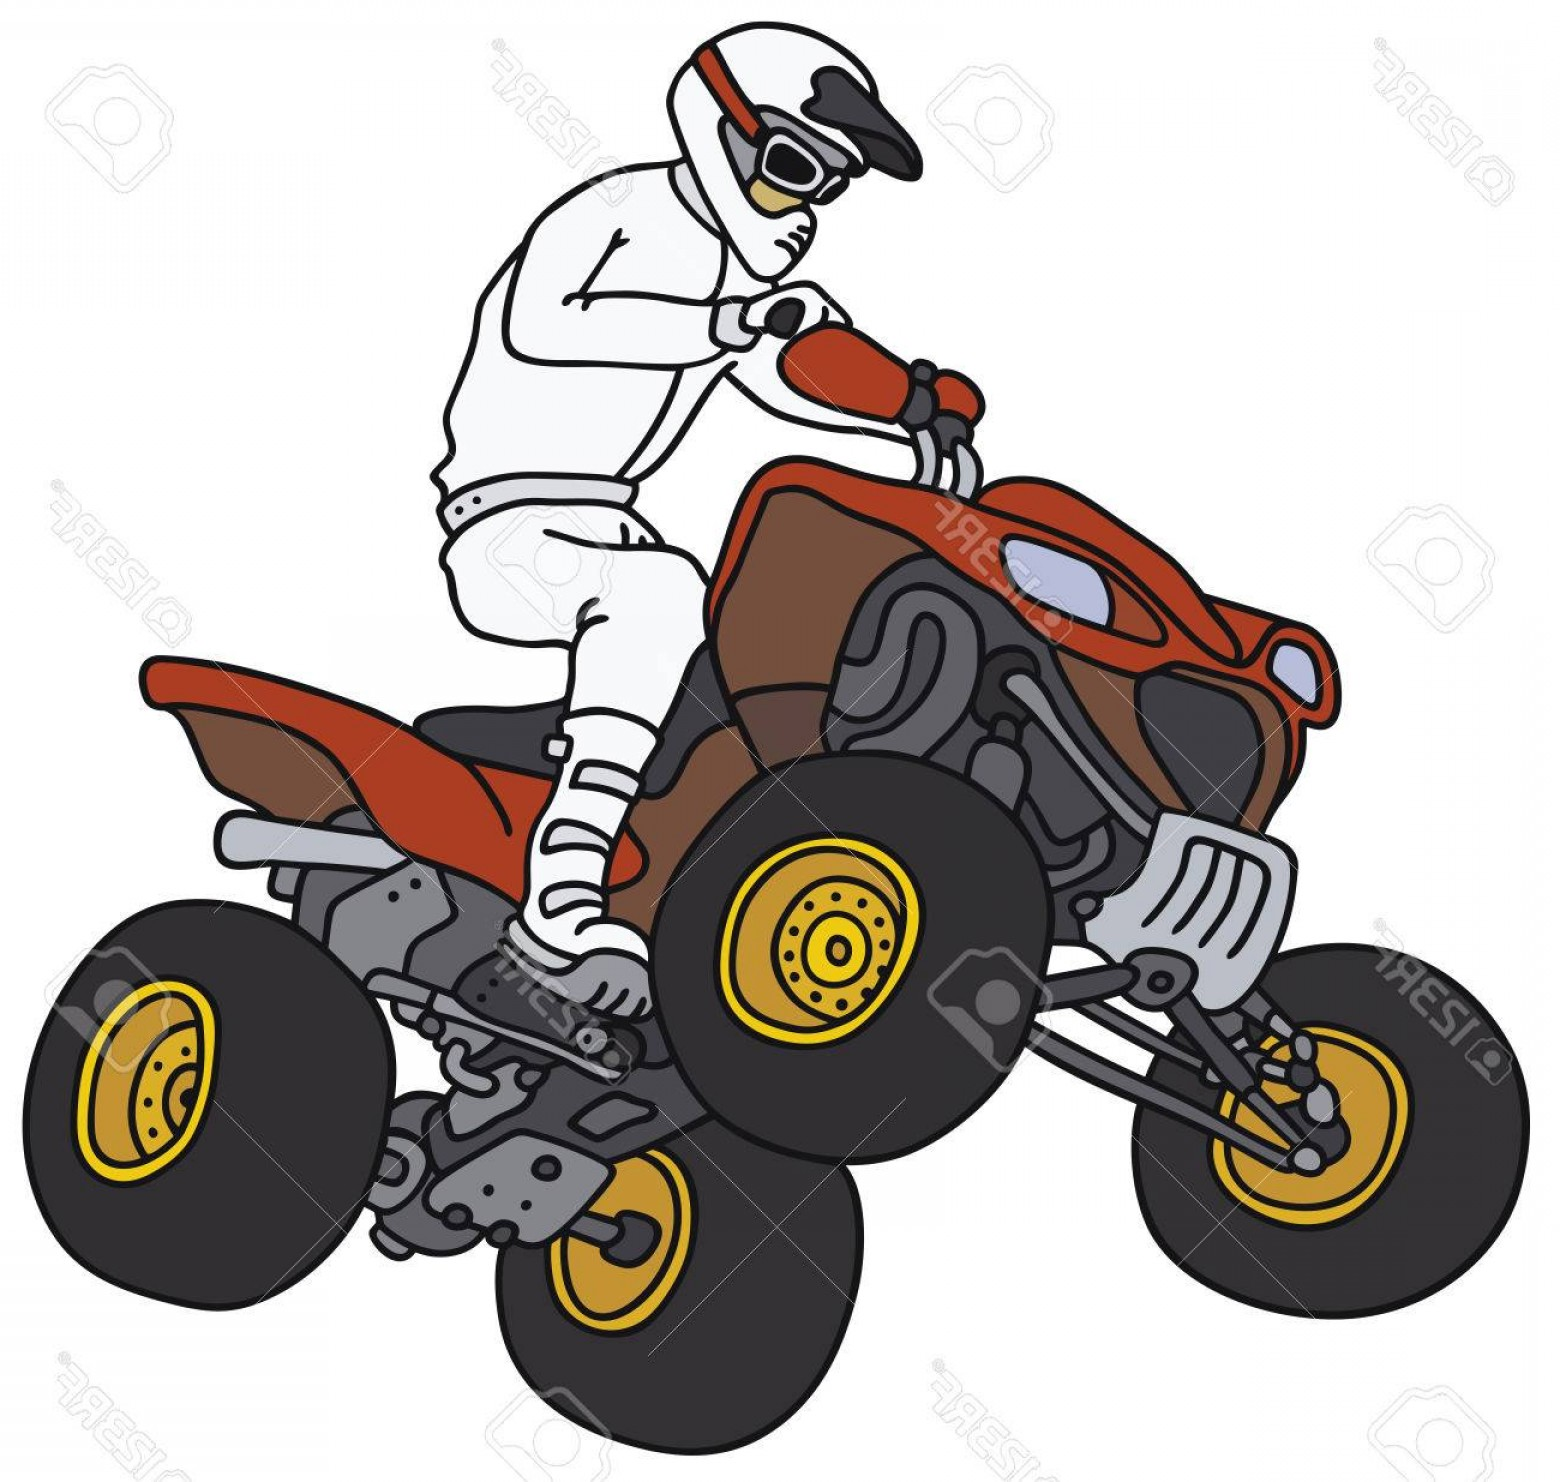 ATV Rider Vector: Photostock Vector Hand Drawing Of A Rider On The Red Atv